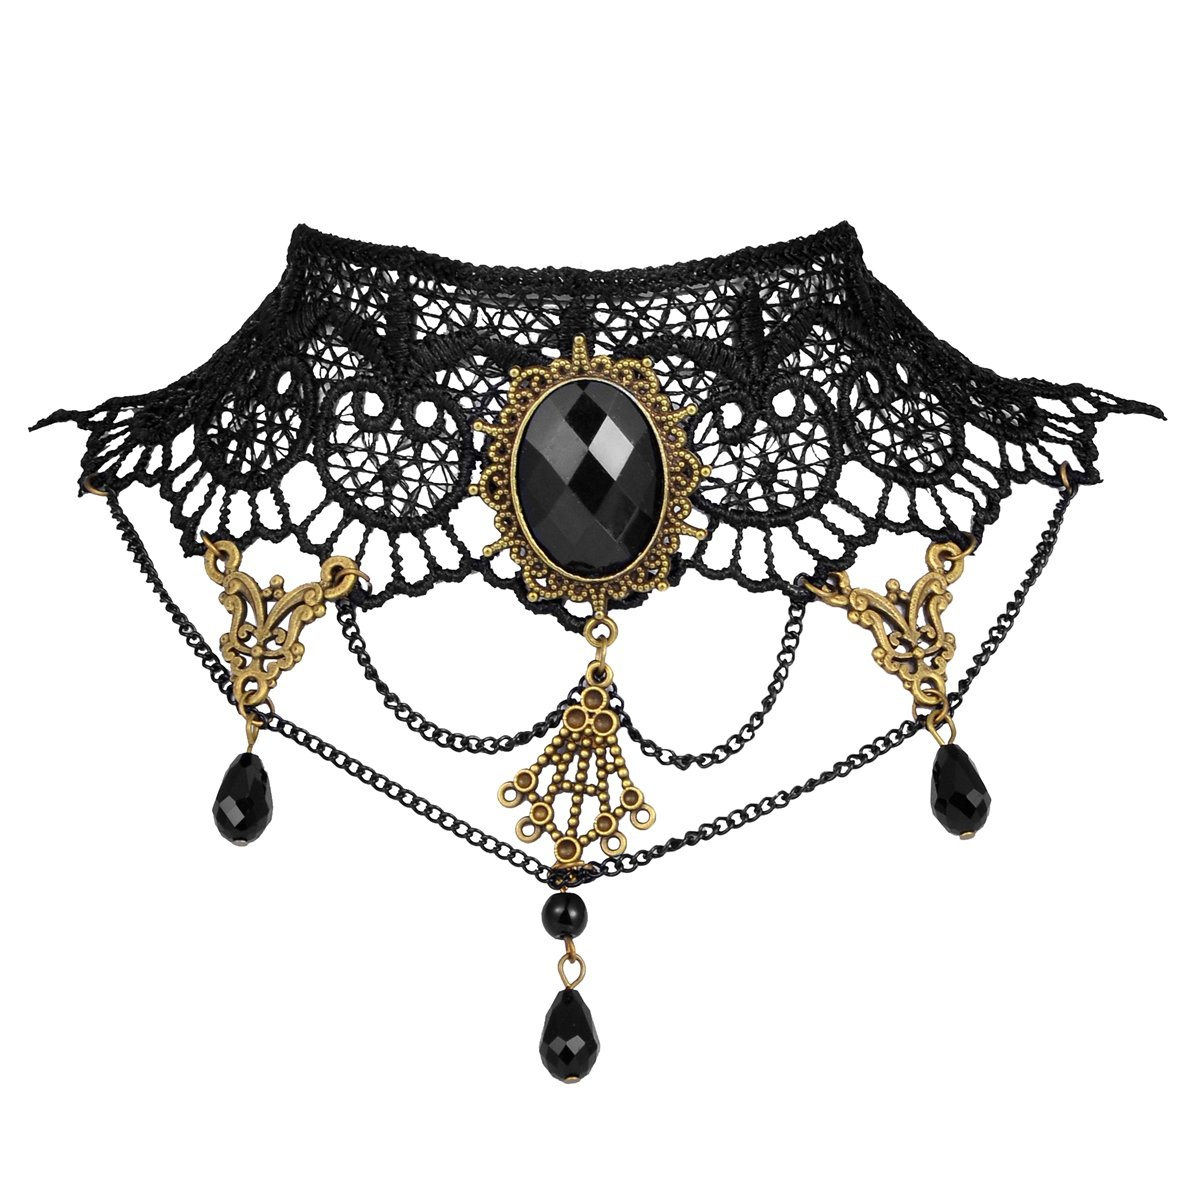 HOUSWEETY Fashion Retro Black Lace Fabric Gothic Collar Choker Necklace Beads Tassels Pendant HOUSWEETYUP00767